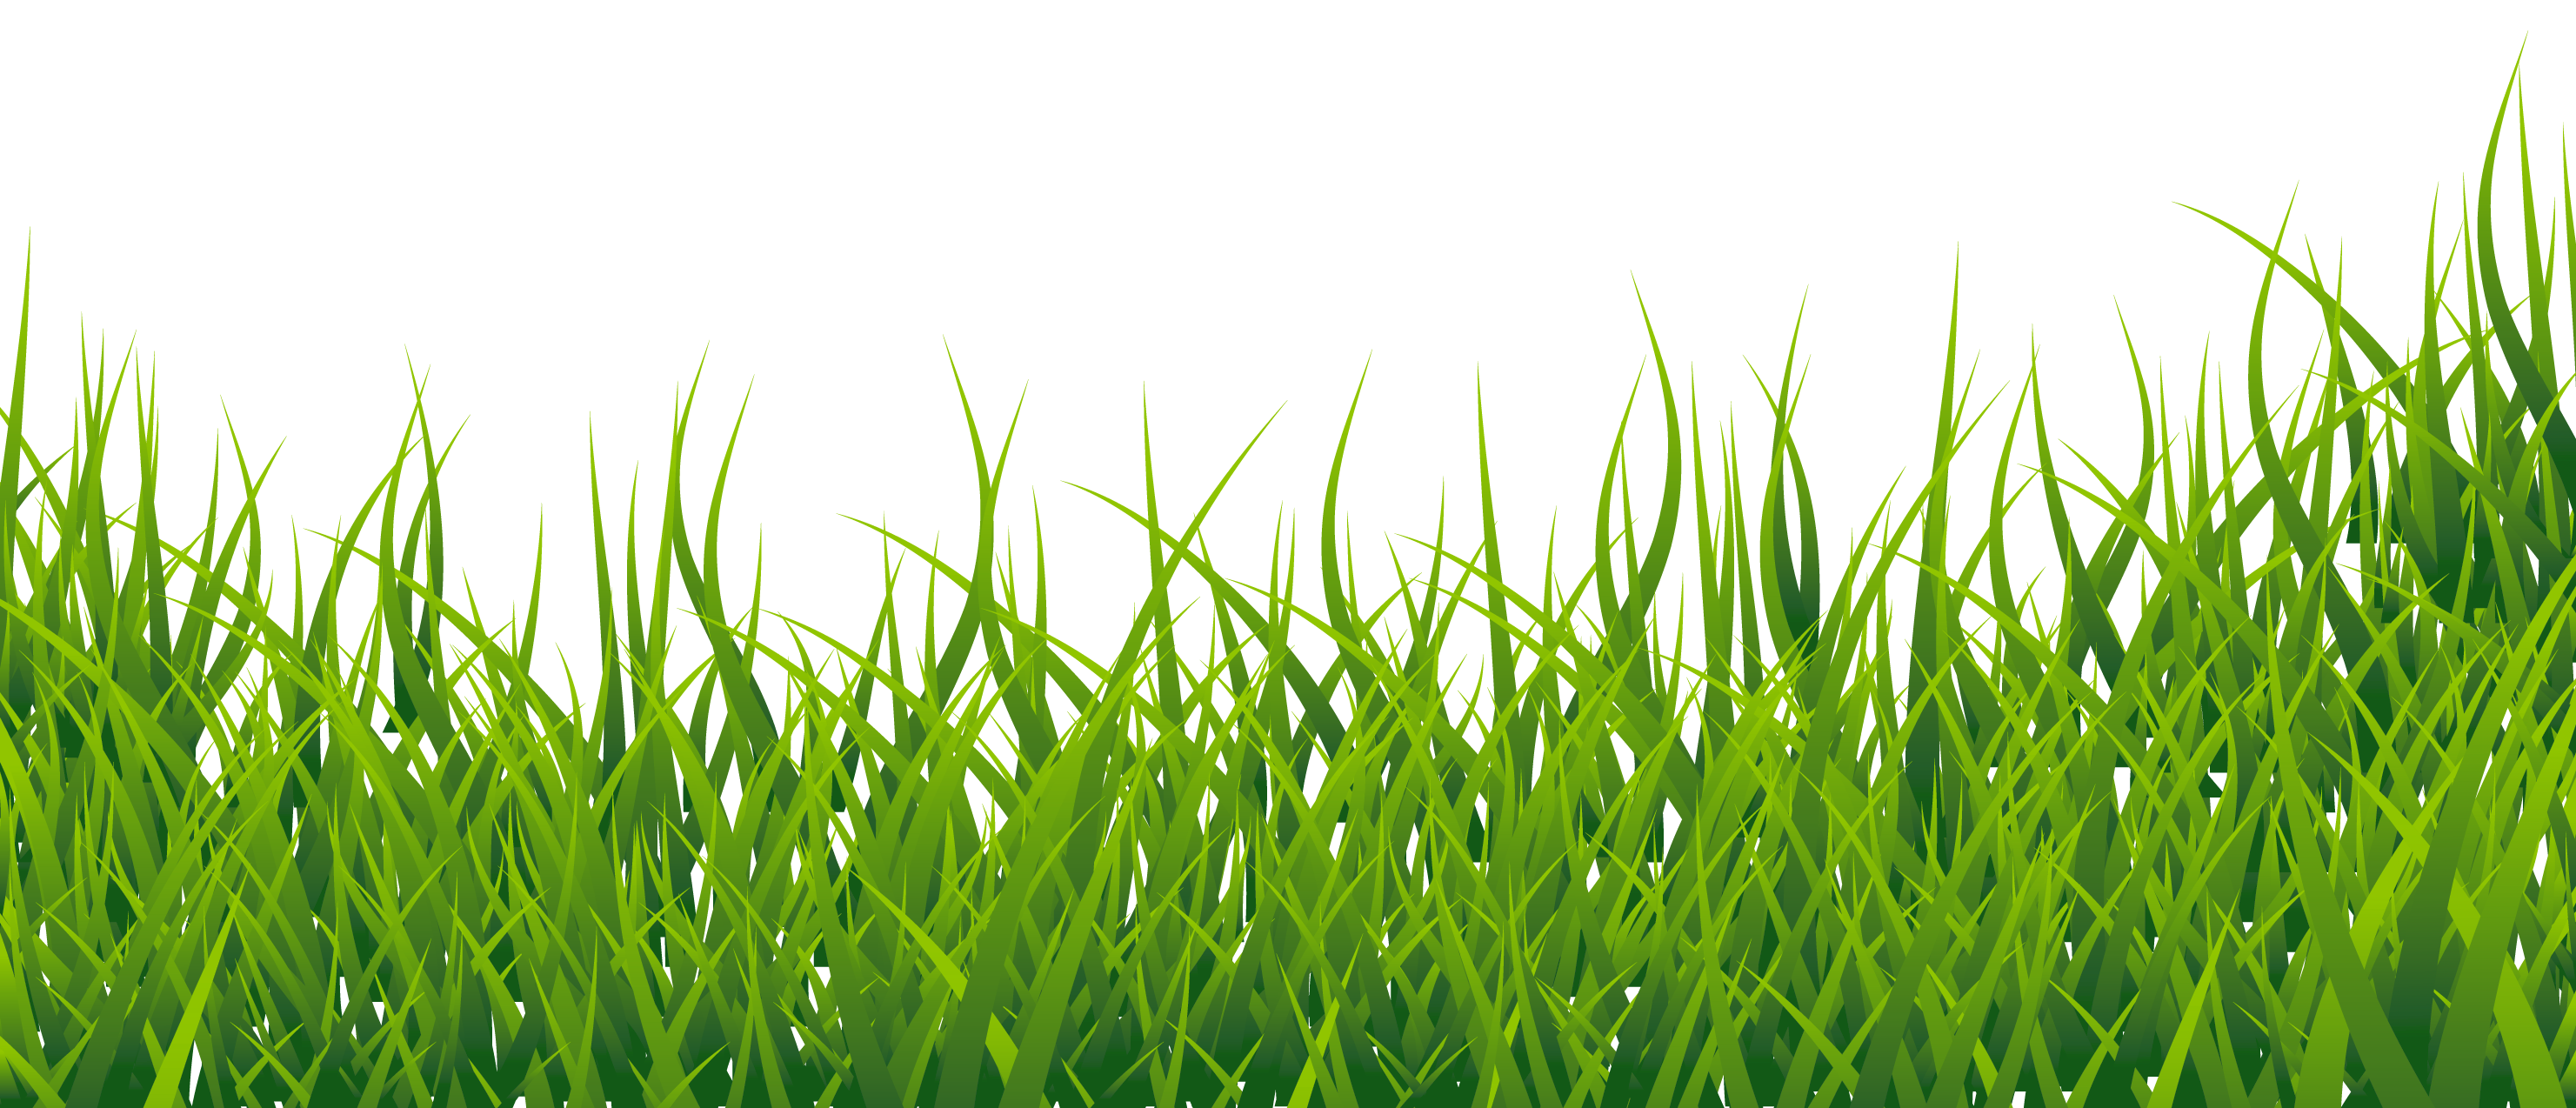 Clipart green grass royalty free stock Free Grass Cliparts, Download Free Clip Art, Free Clip Art on ... royalty free stock